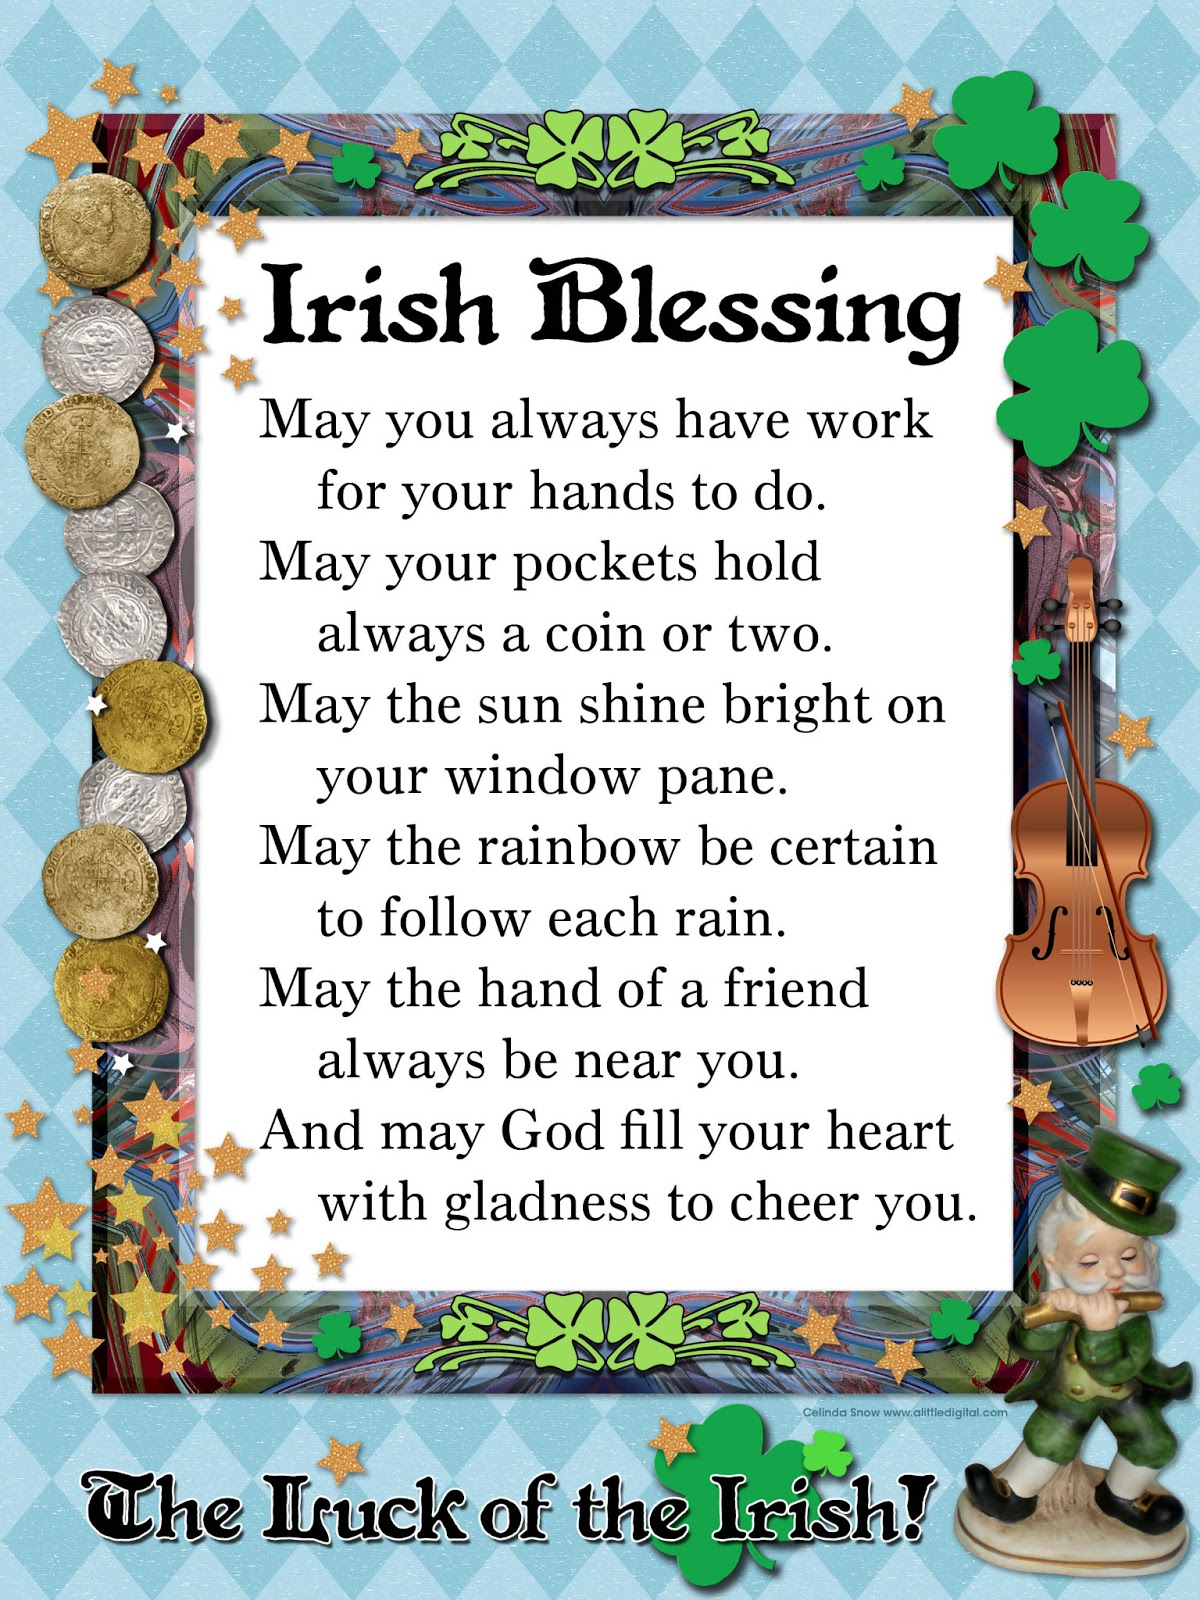 * Nubia_group Inspiration *: Sharing Irish Blessings (from the NET)